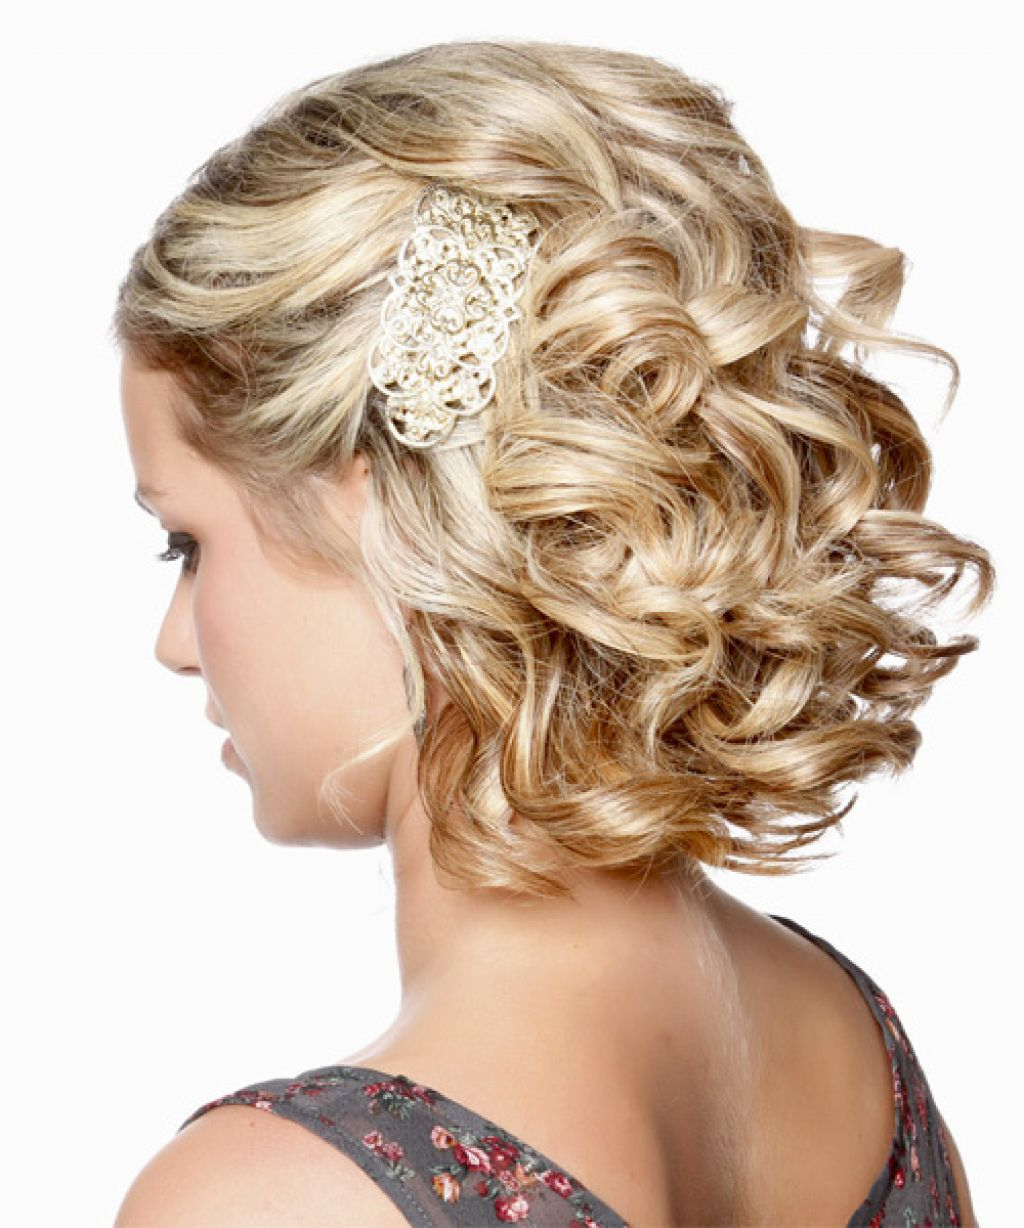 Most Popular Curly Medium Hairstyles For Prom For Curly Prom Hairstyles For Medium Hair Curly Prom Hairstyle For (View 14 of 20)